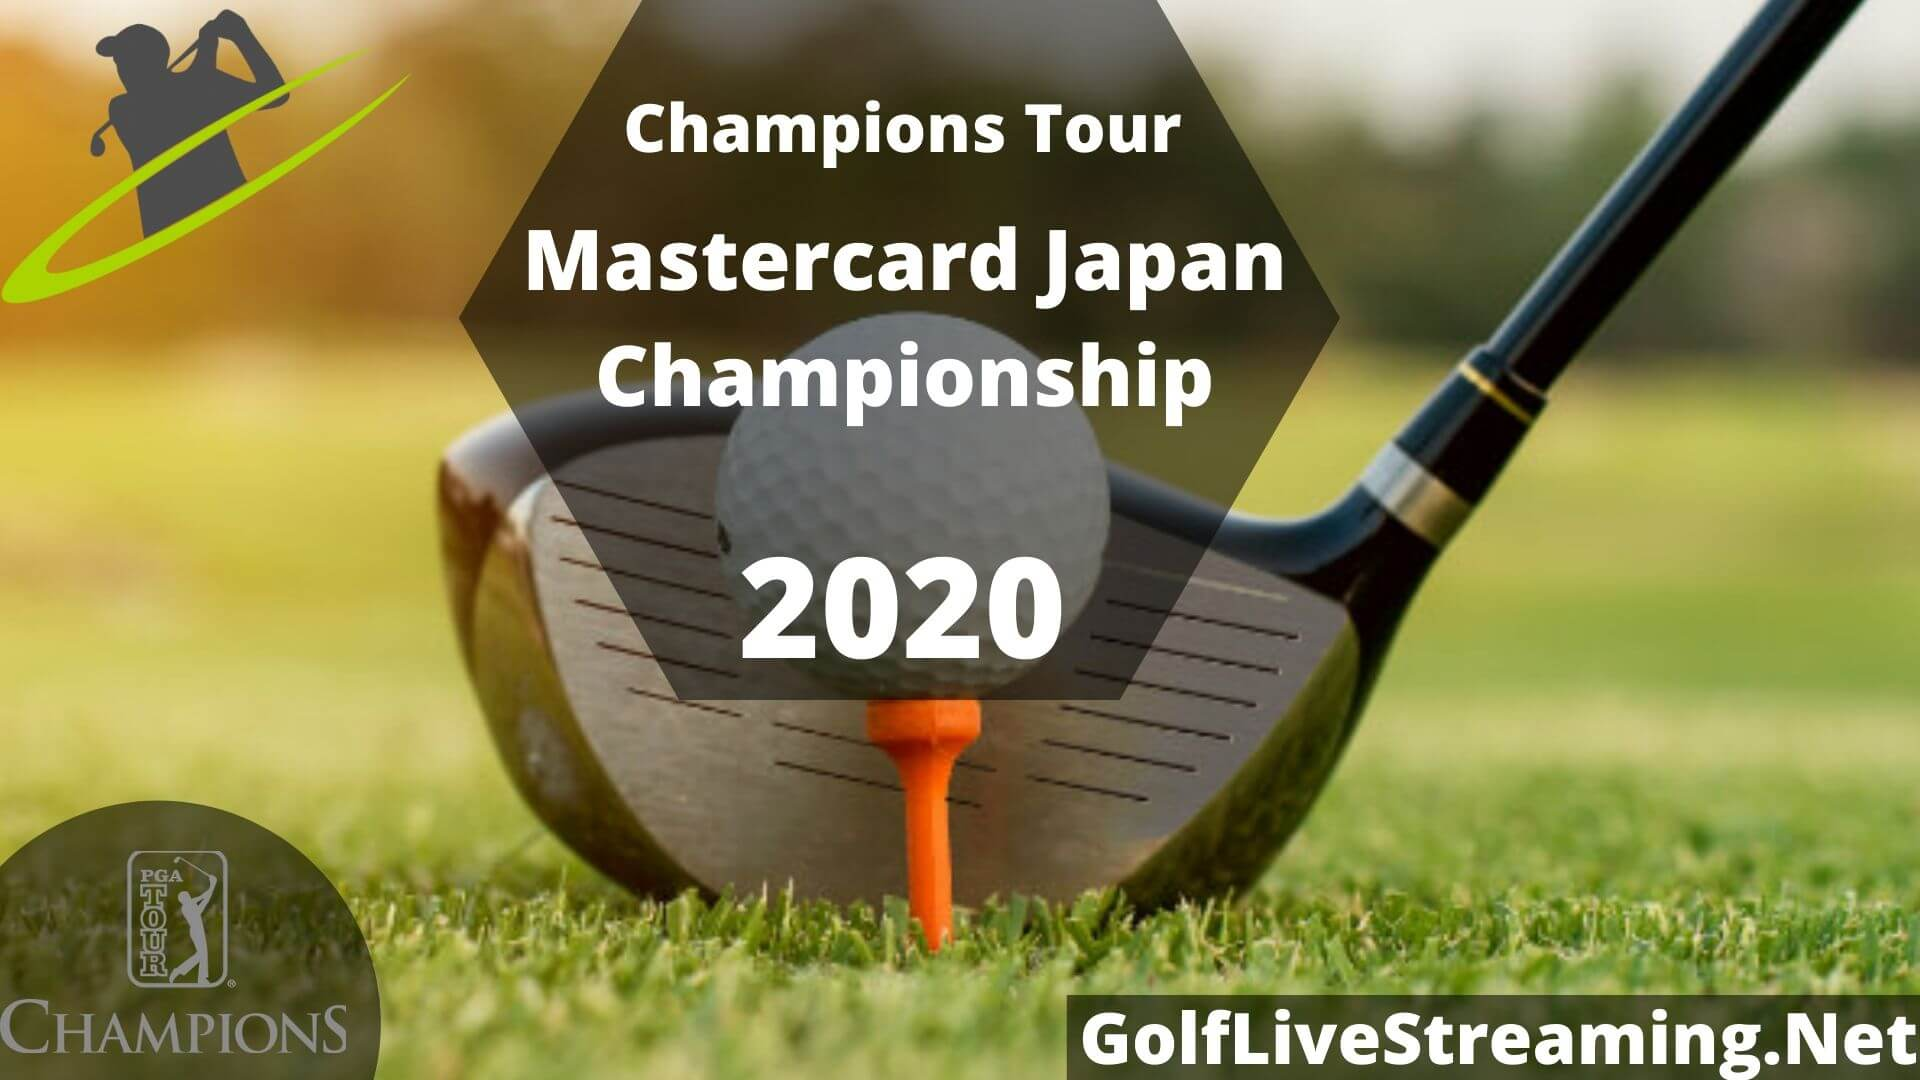 Mastercard Japan Championship Live Stream 2020 | Champions Tour Round 4